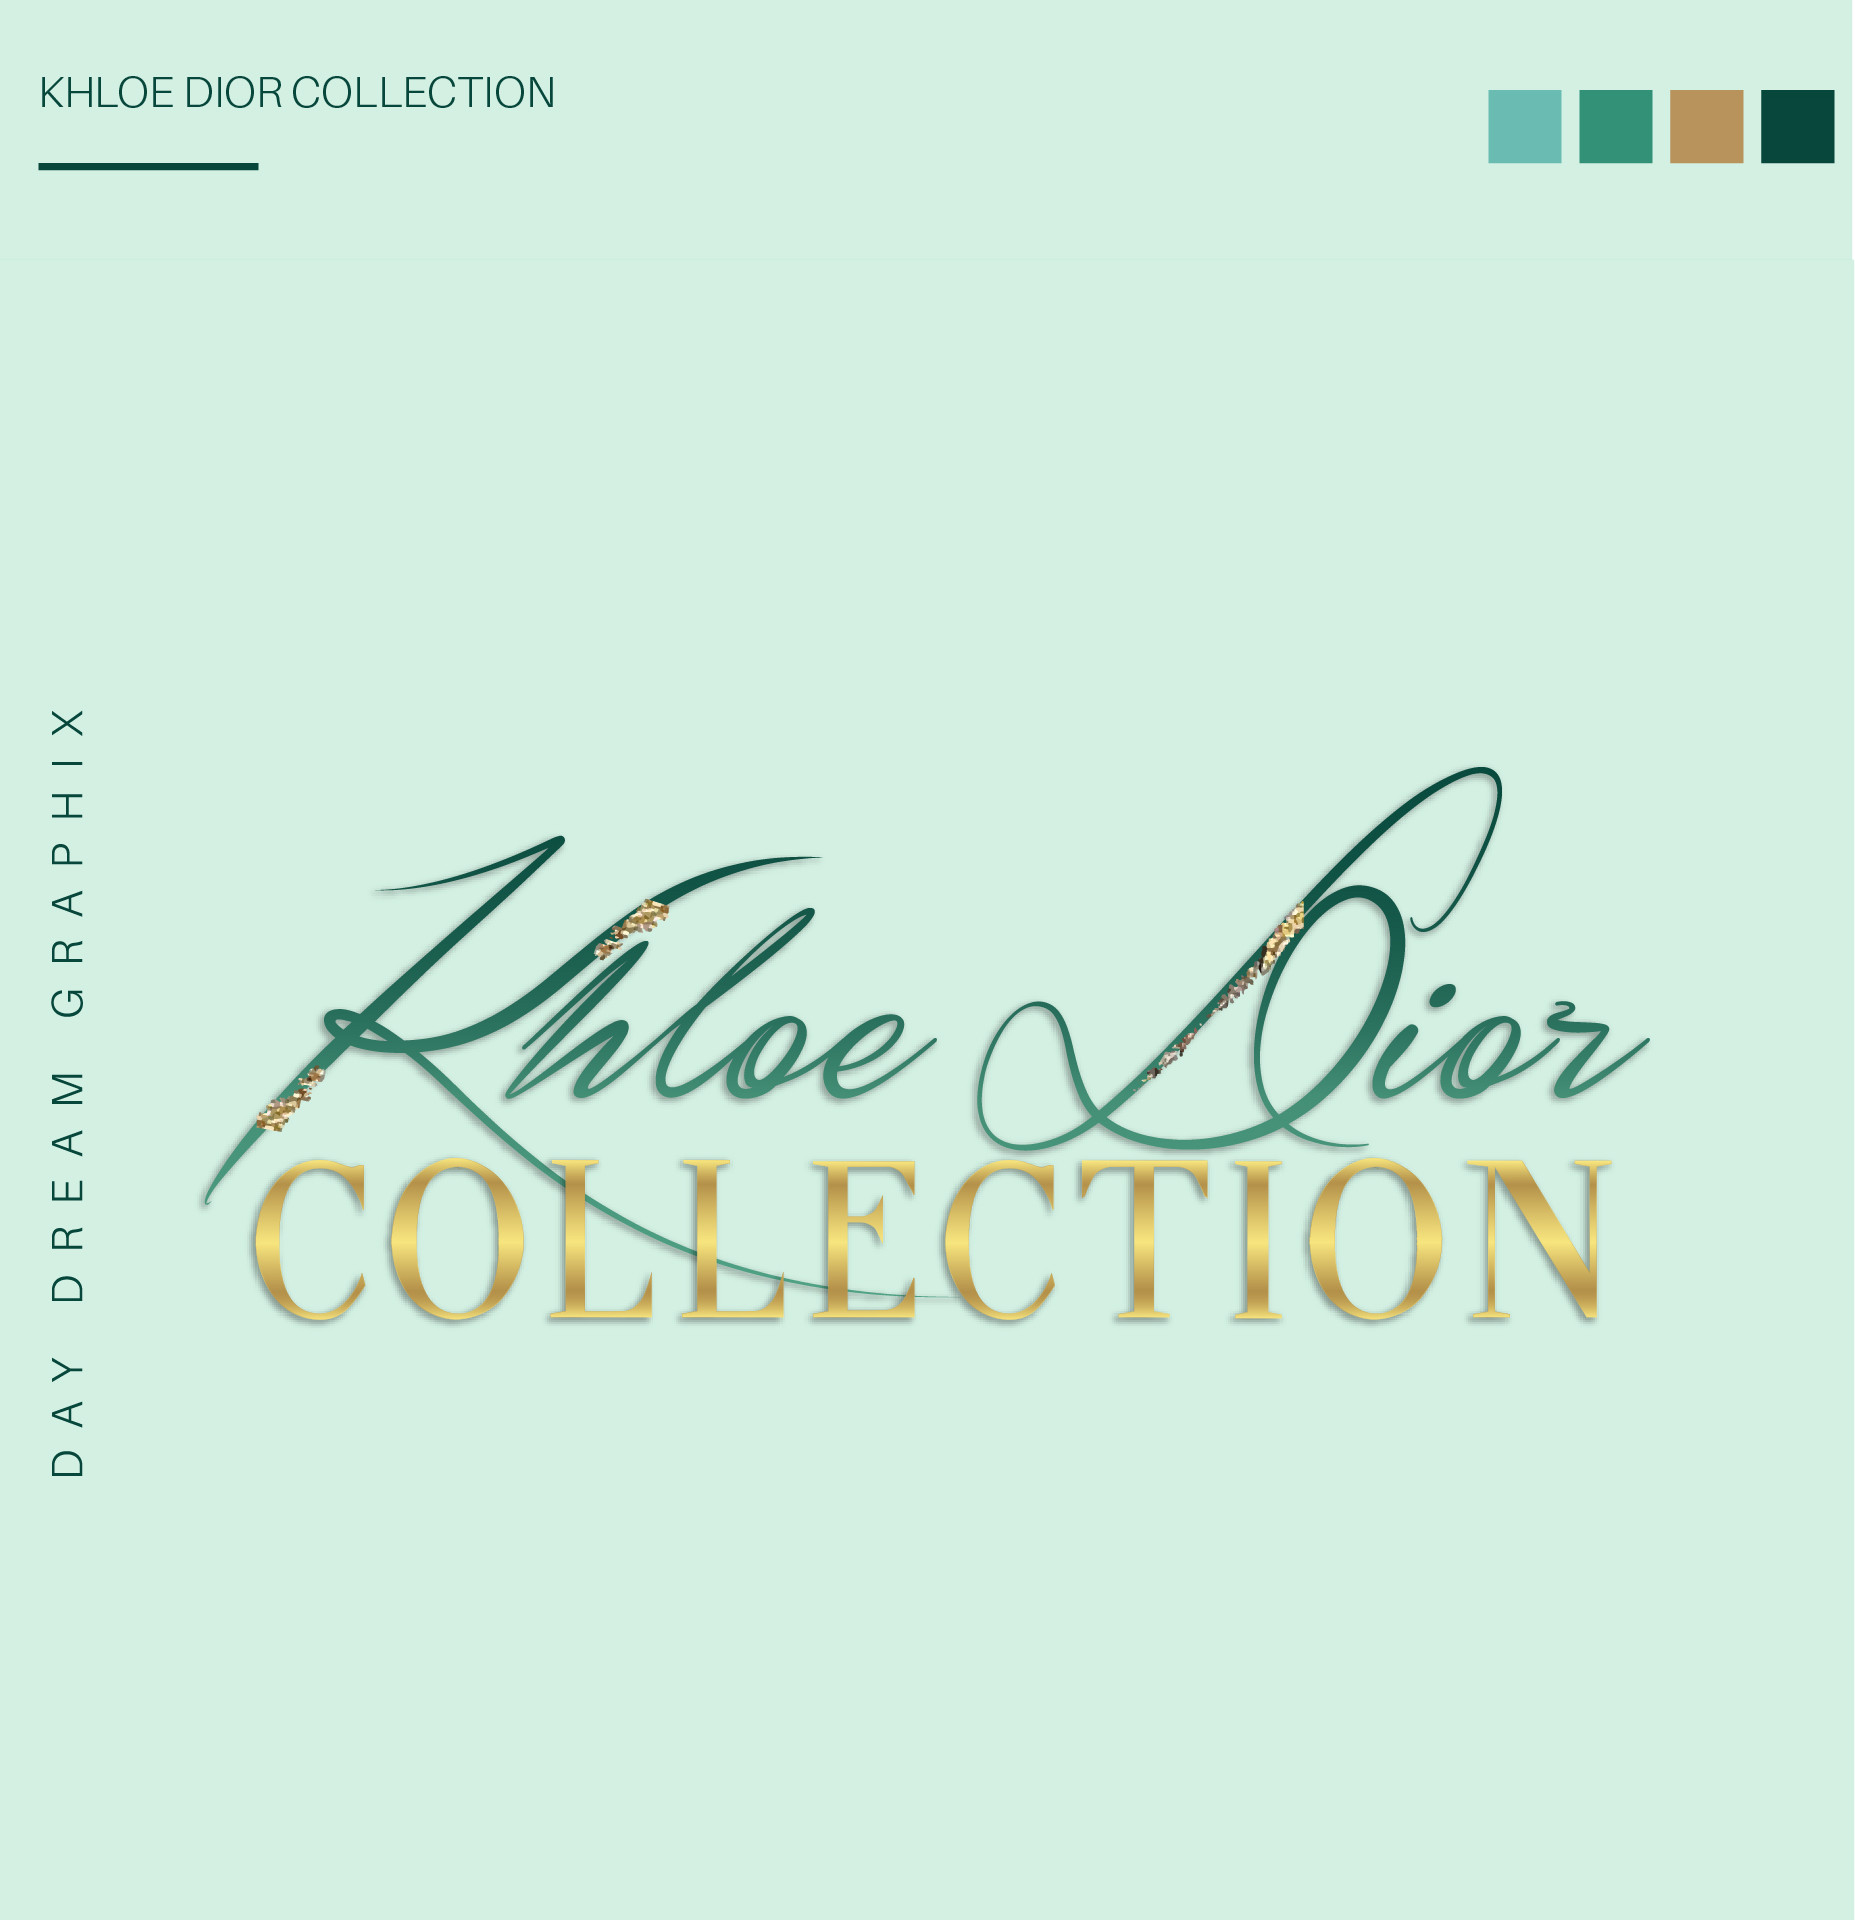 Khloe Dior Collection Logo-04.jpg